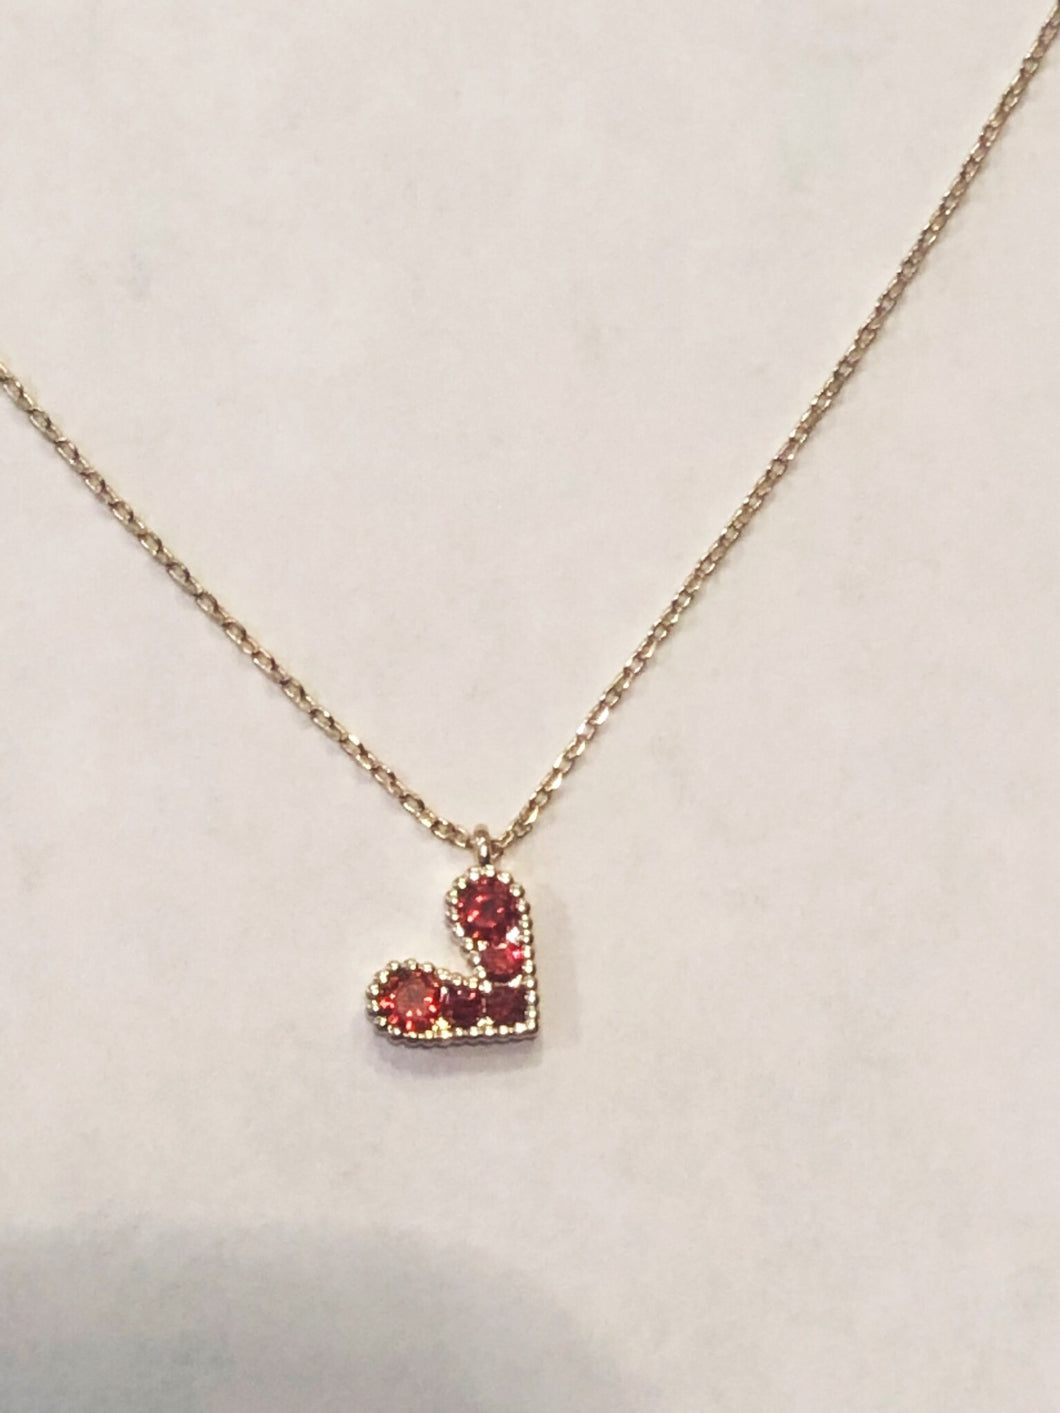 Dainty Heart Necklace!